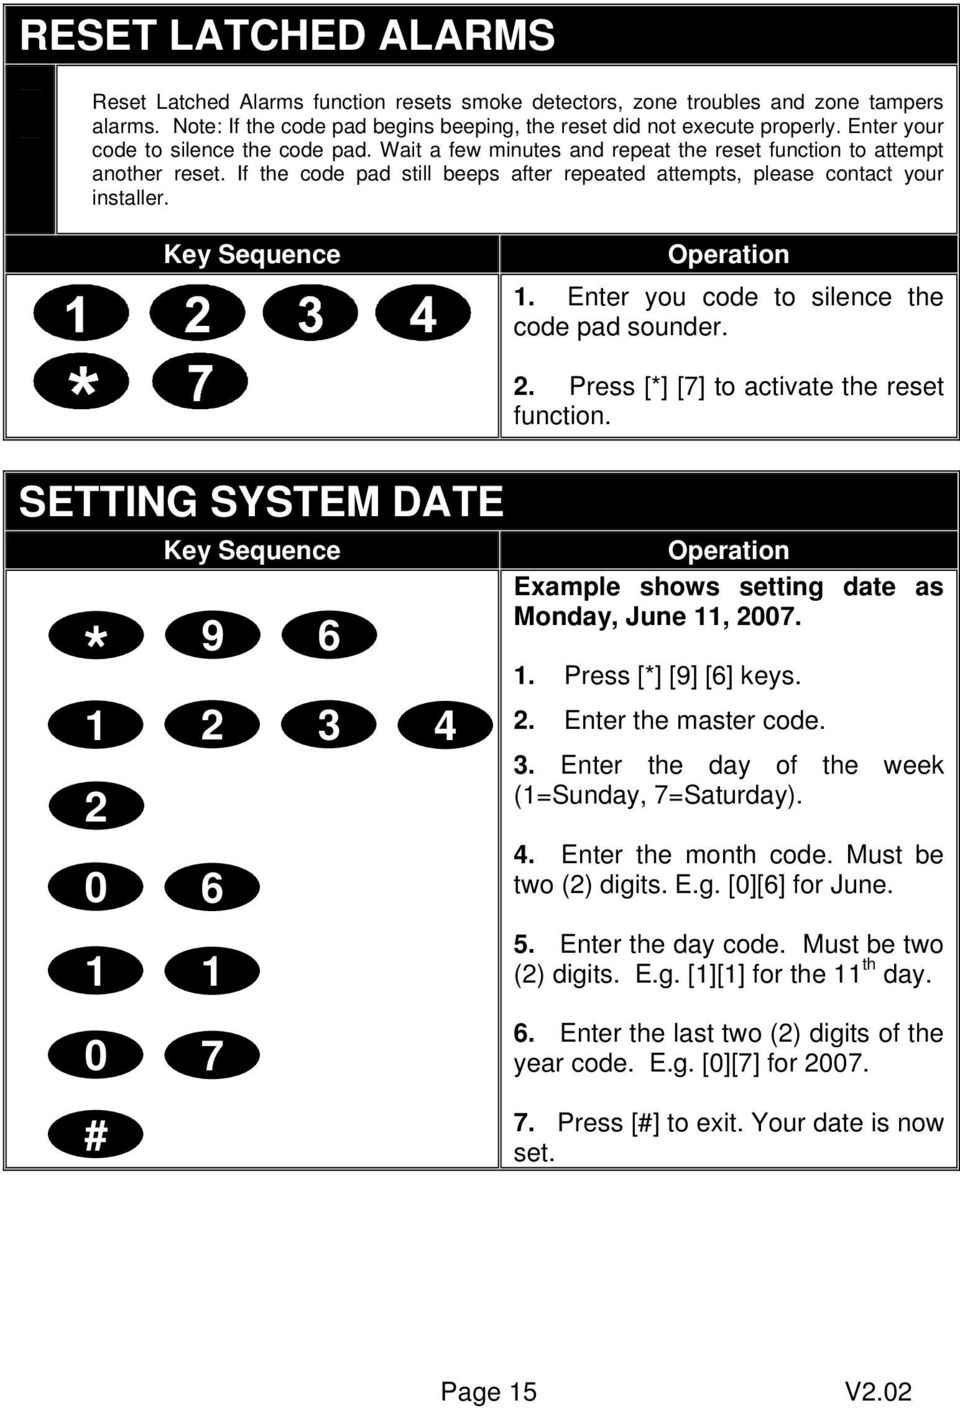 1. Enter you code to silence the code pad sounder. 2. Press [*] [7] to activate the reset function. SETTING SYSTEM DATE * 1 2 0 6 9 6 2 3 4 Example shows setting date as Monday, June 11, 2007. 1. Press [*] [9] [6] keys.